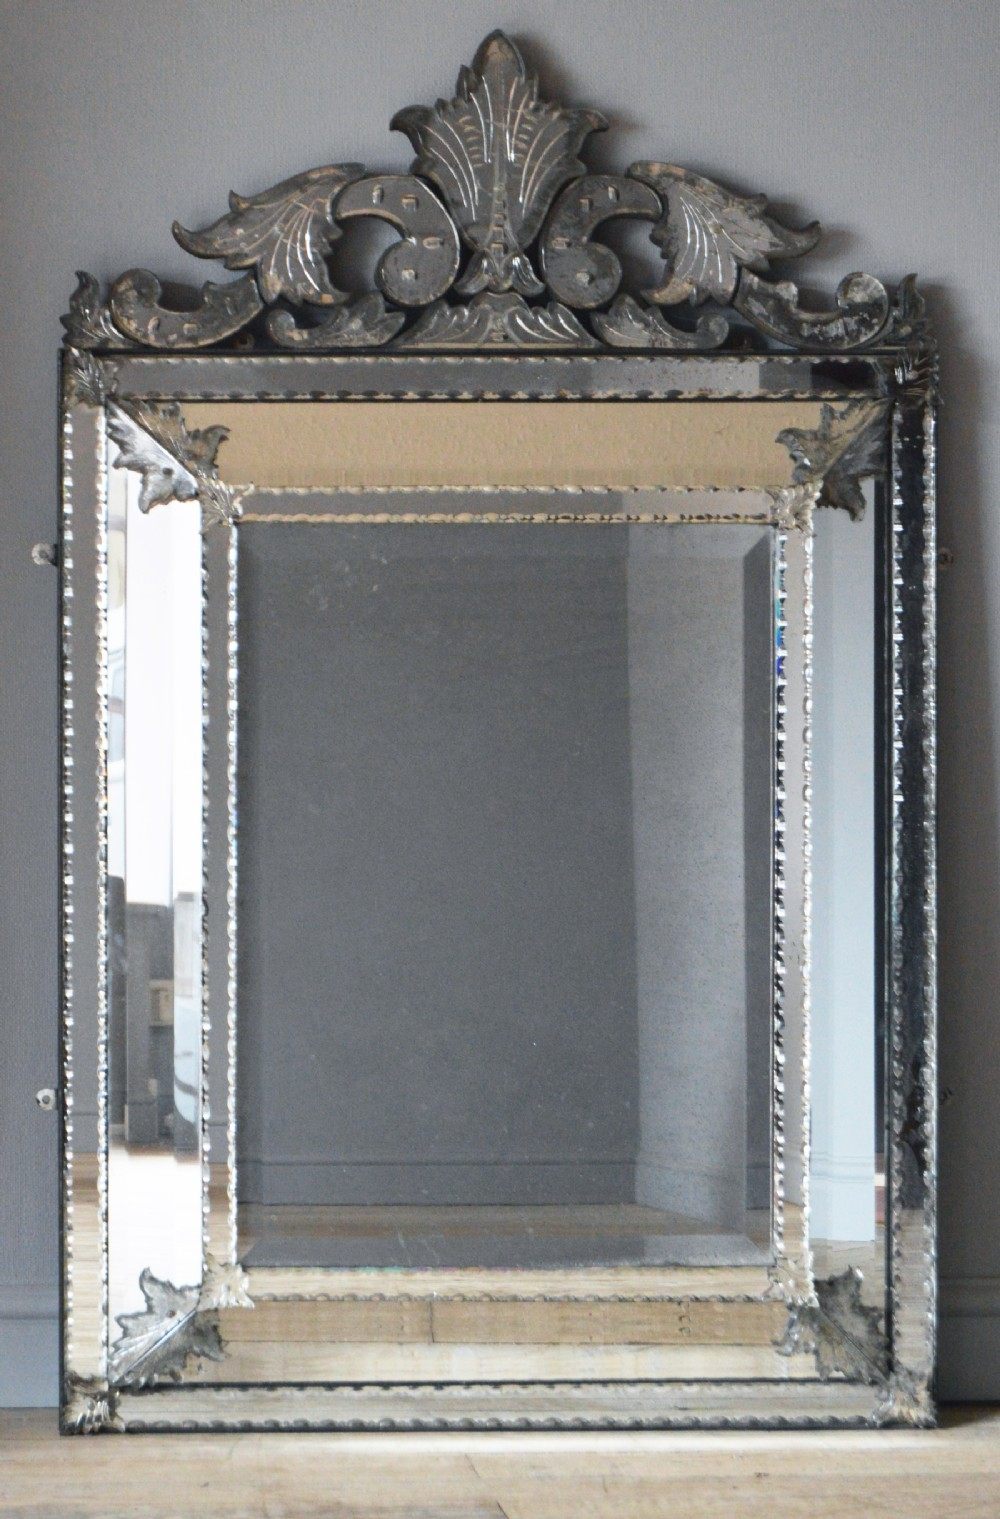 Antique Venetian Glass Mirror Within Antique Venetian Mirror (Image 4 of 15)